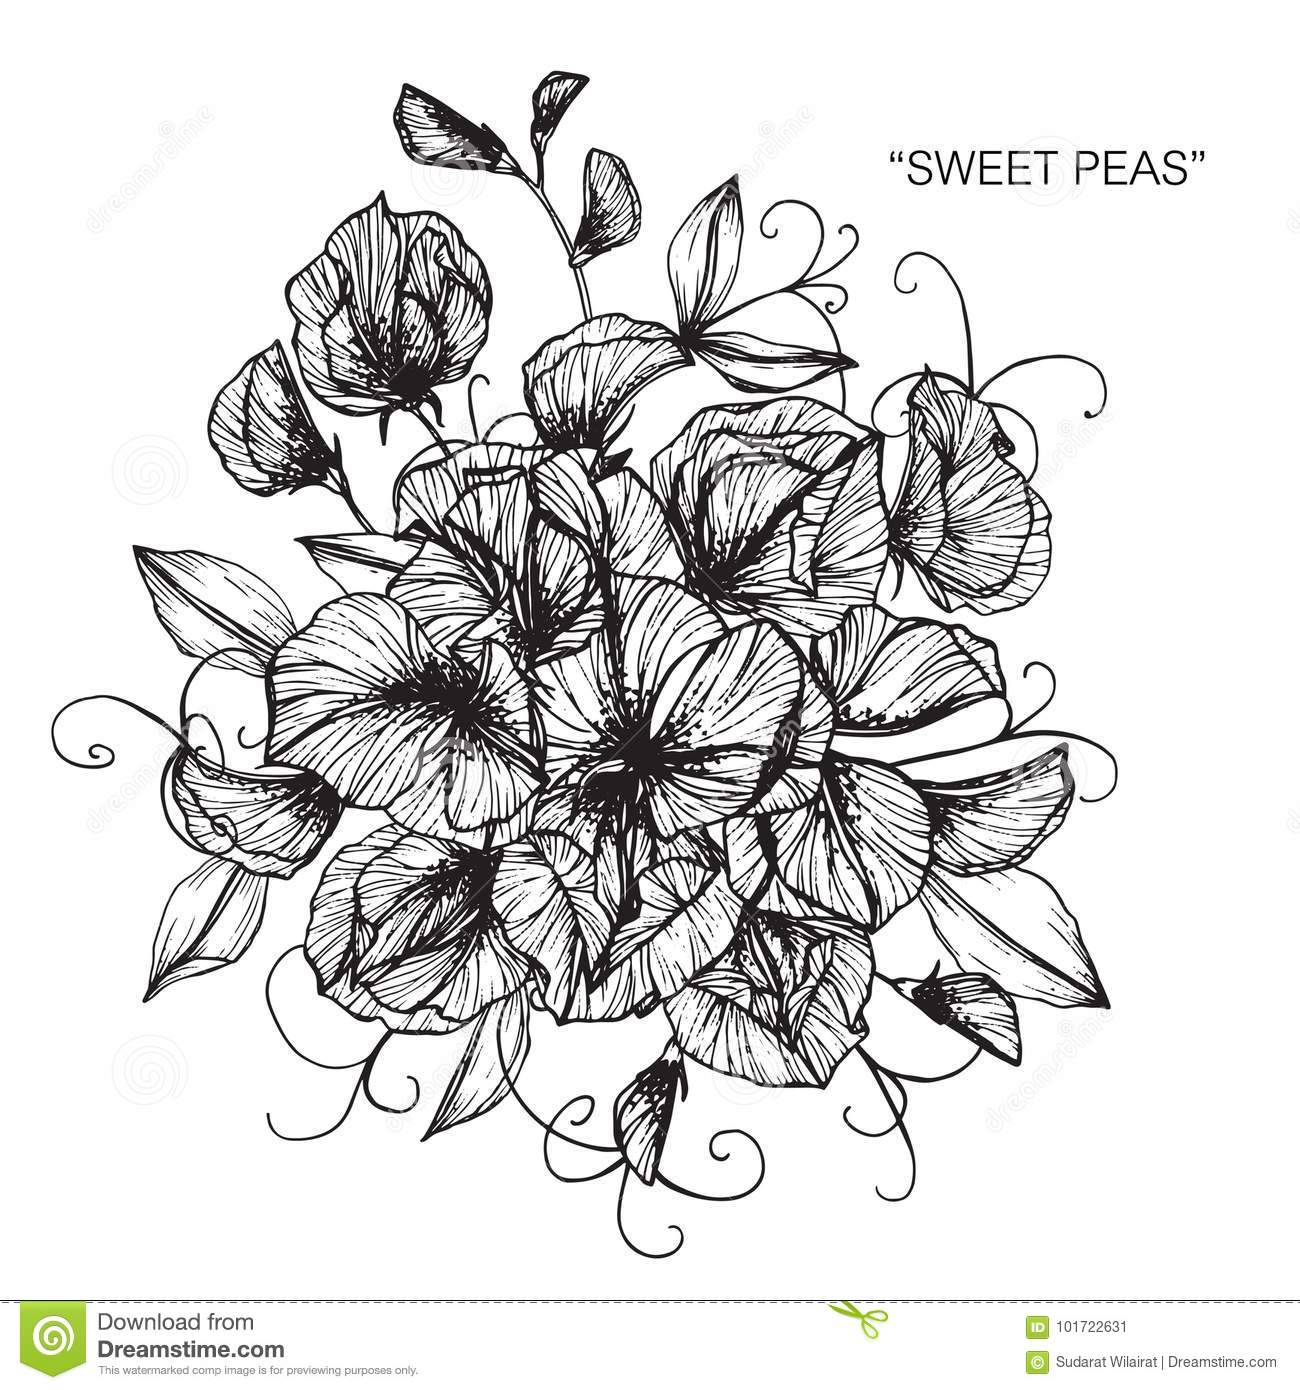 Bouquet of sweet pea flowers drawing and sketch stock illustration bouquet of sweet pea flowers drawing and sketch izmirmasajfo